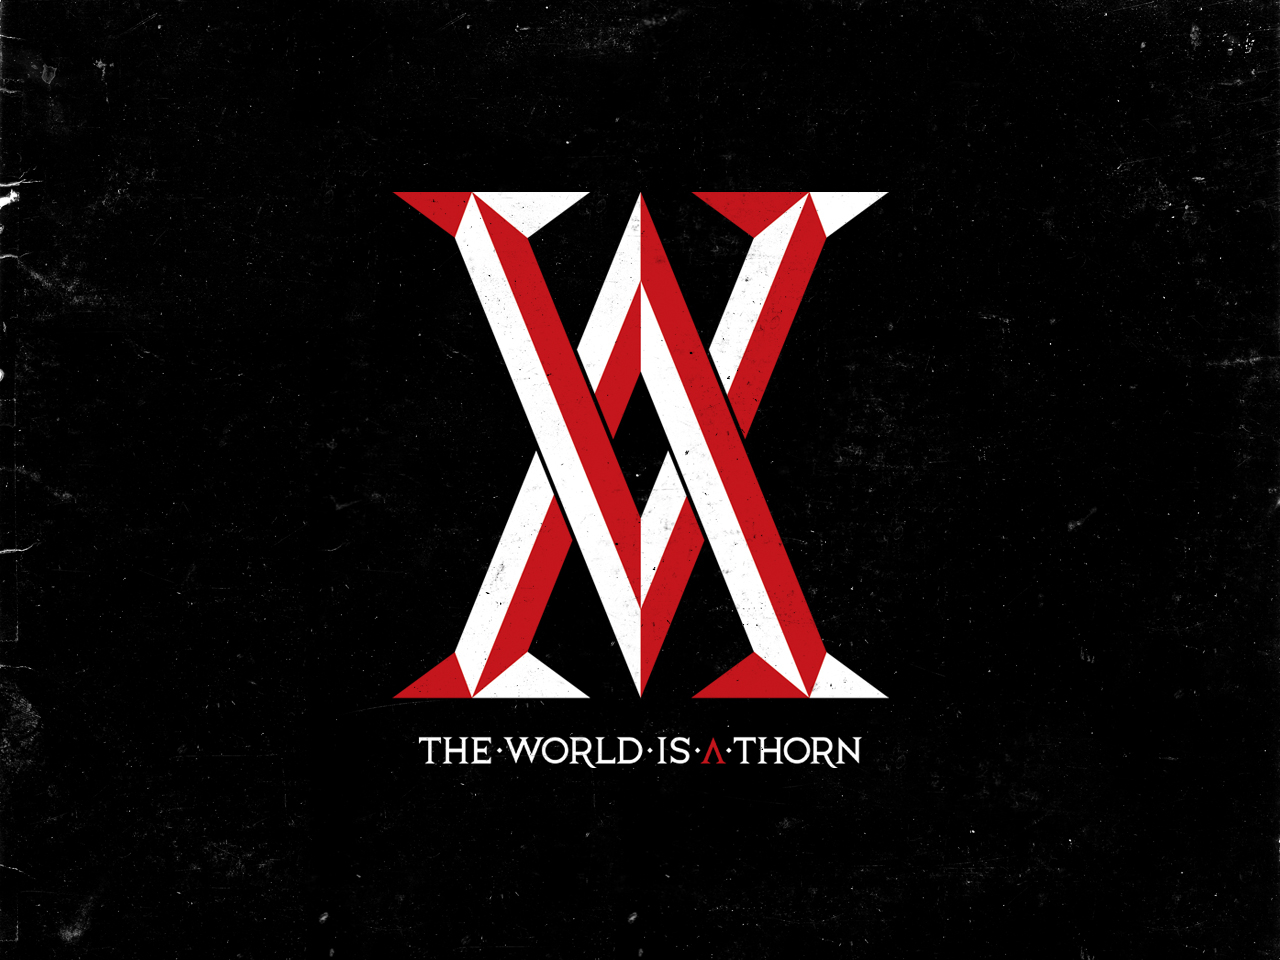 Demon Hunter V Wallpaper The World Is A Thorn Release Date March 9 2010